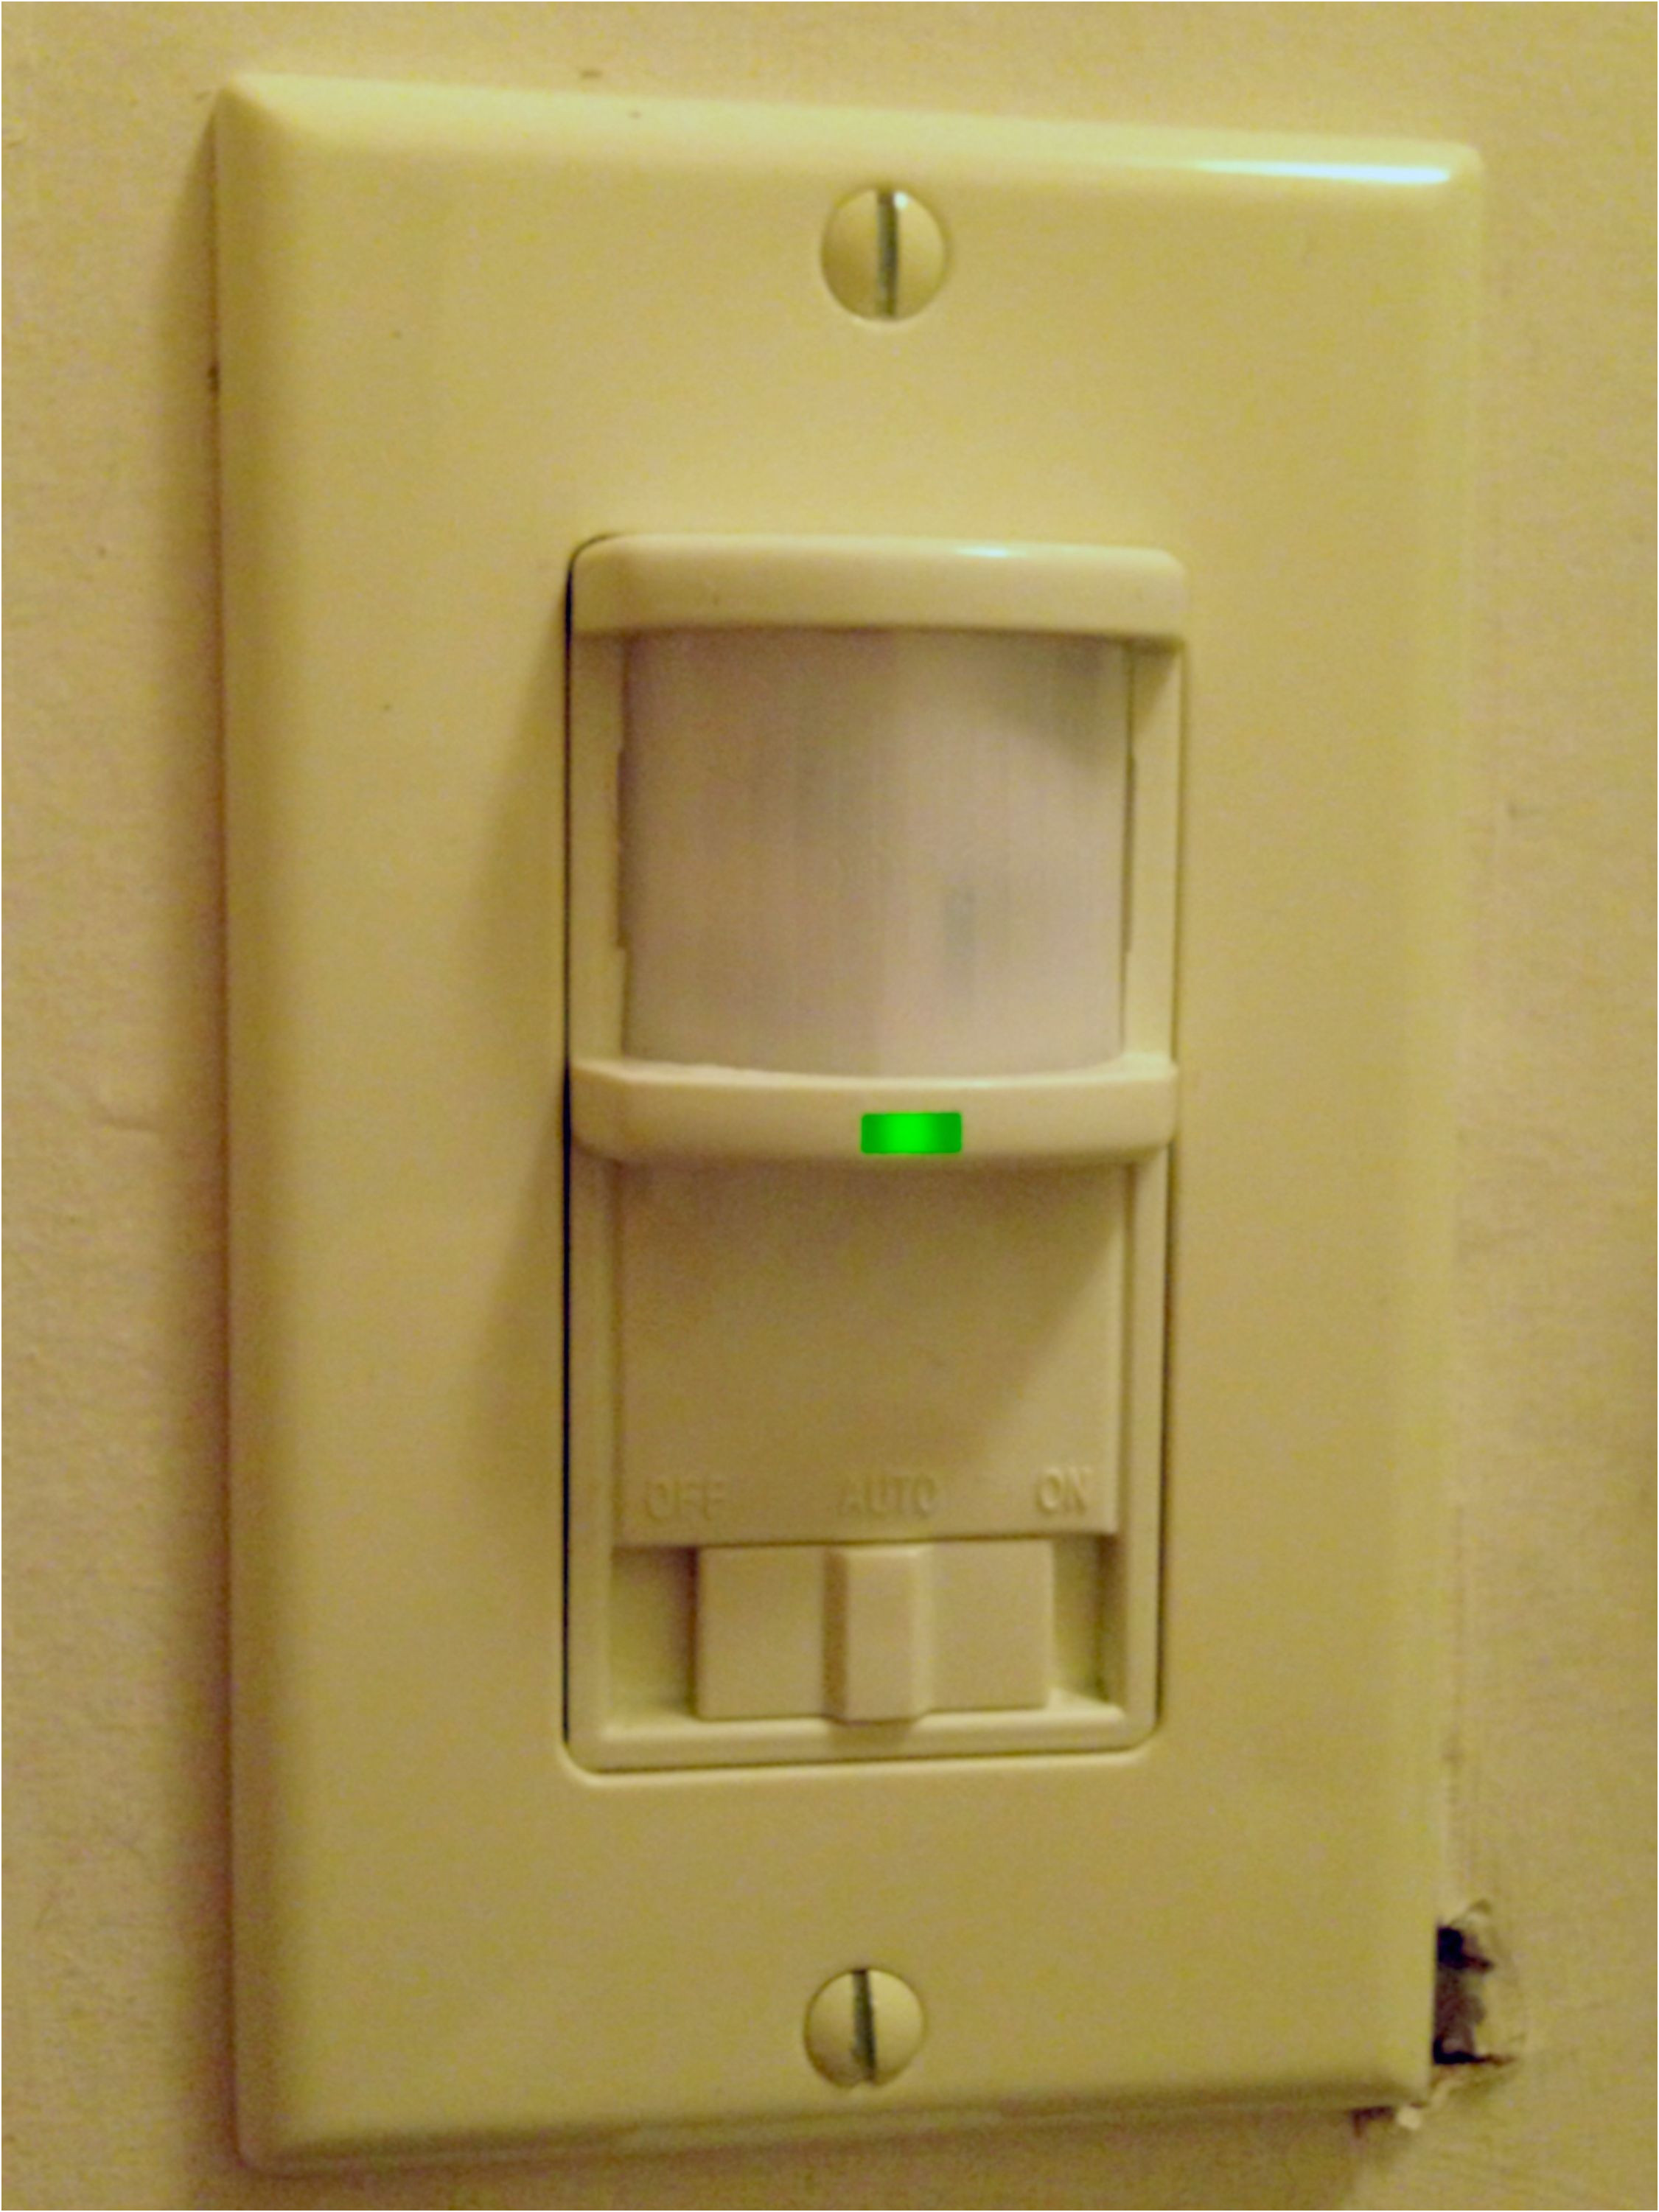 Inspirational Garage Door Sensor Yellow Light and Green Light